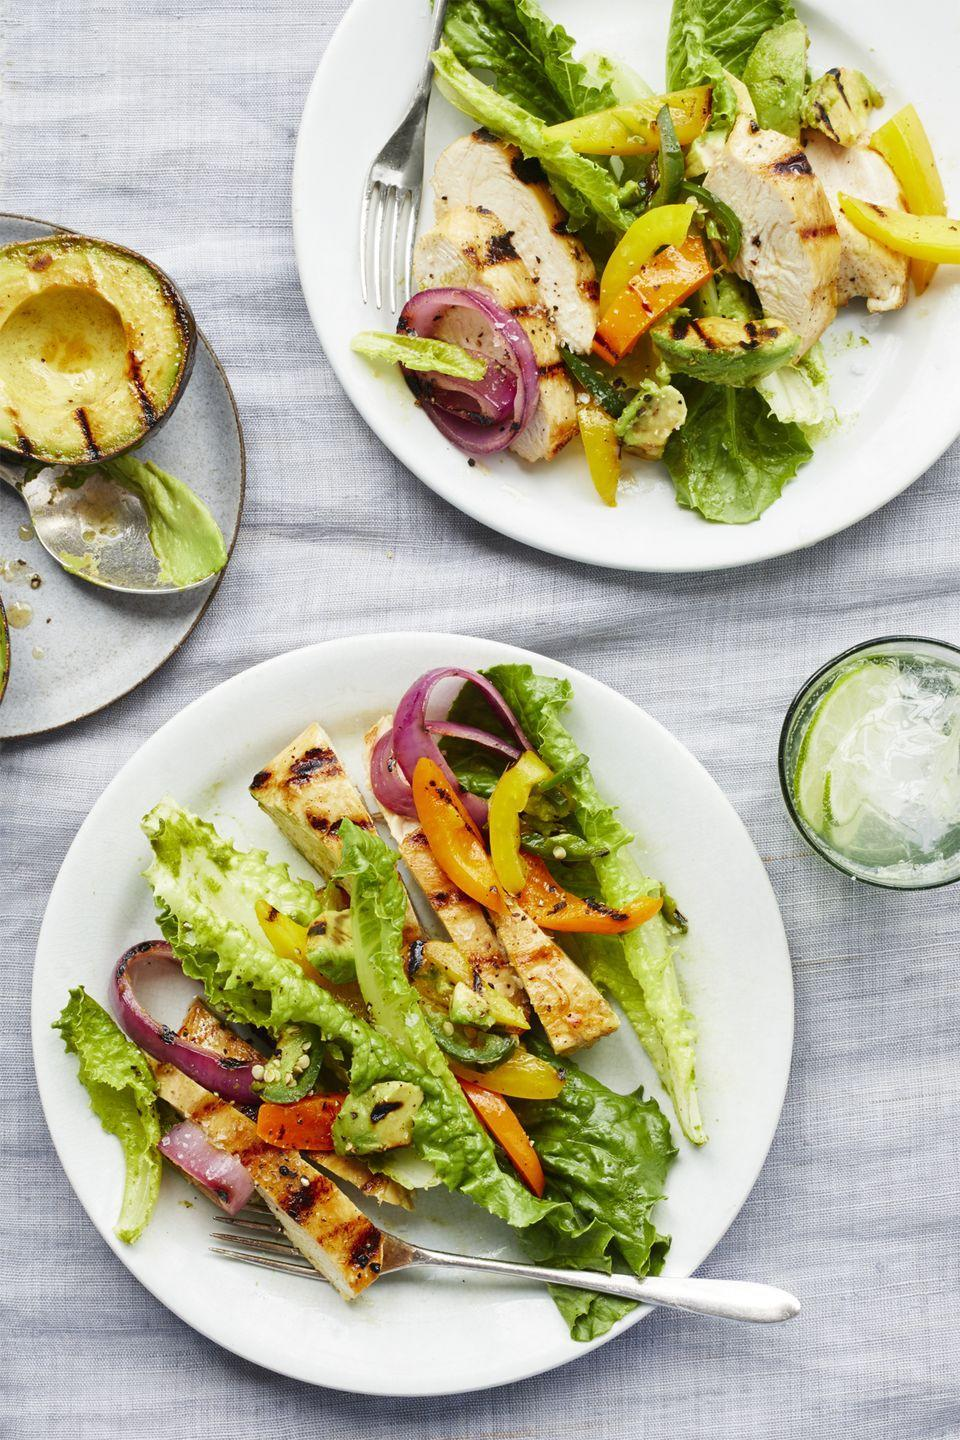 "<p>Skip the tortillas for lettuce and these easy chicken fajitas become way healthier.</p><p><a href=""https://www.womansday.com/food-recipes/food-drinks/recipes/a59406/chicken-fajita-salad-lime-cilantro-vinaigrette-recipe/"" rel=""nofollow noopener"" target=""_blank"" data-ylk=""slk:Get the Chicken Fajita Salad with Lime-Cilantro Vinaigrette recipe."" class=""link rapid-noclick-resp""><em><strong>Get the Chicken Fajita Salad with Lime-Cilantro Vinaigrette recipe.</strong></em></a></p>"